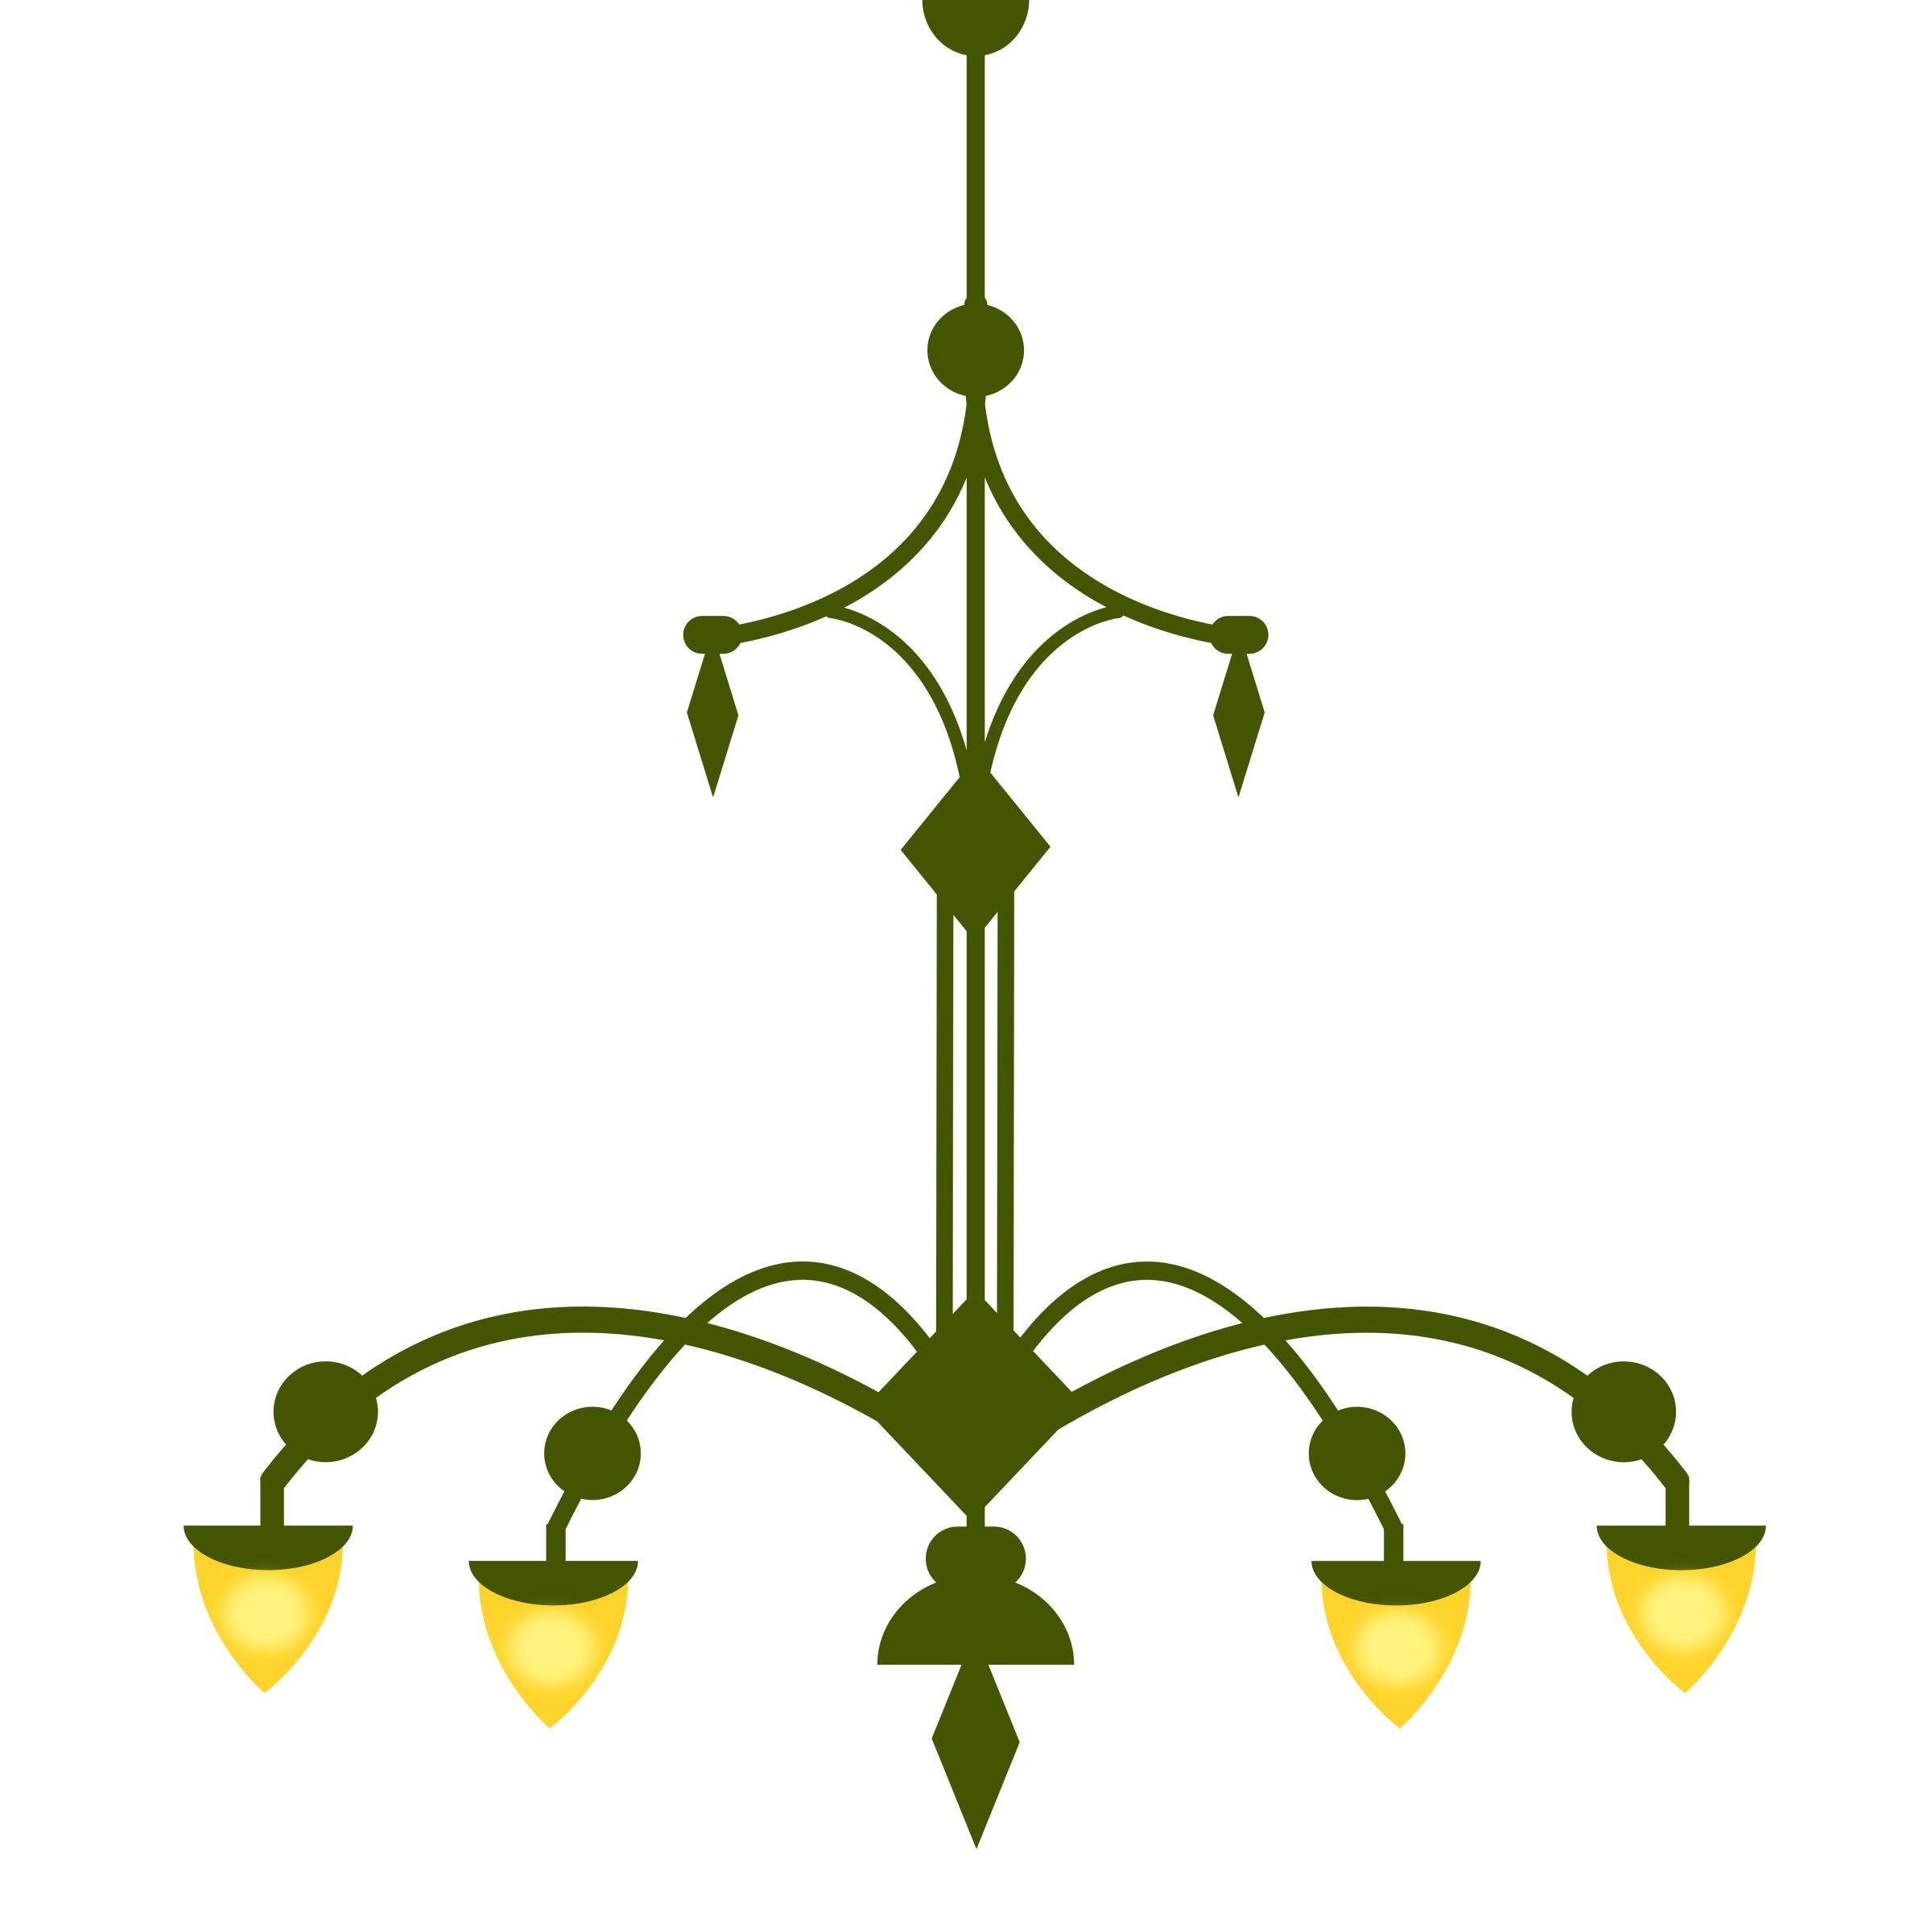 Chandelier clipart png. Ornate with lamps version